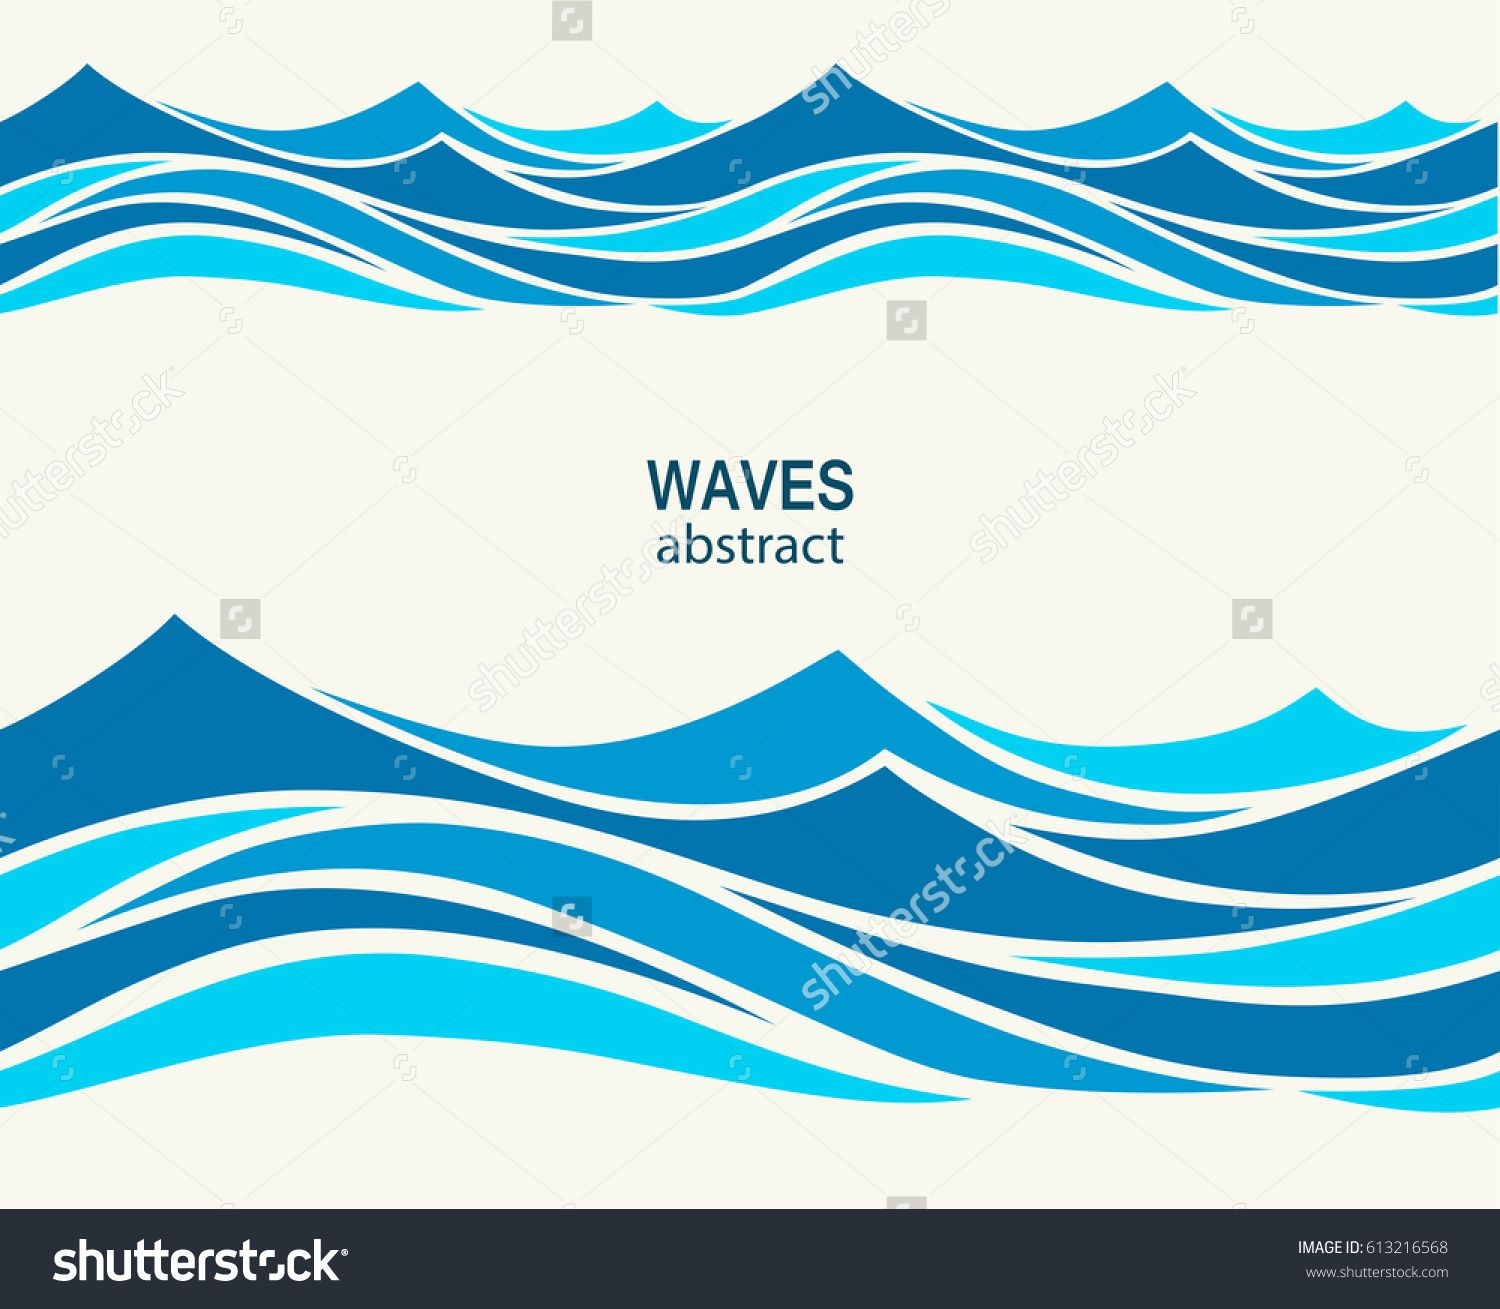 Ocean wave sketch ocean waves audio wave pinterest wave marine seamless pattern with stylized blue waves on a light background water wave abstract design amipublicfo Images